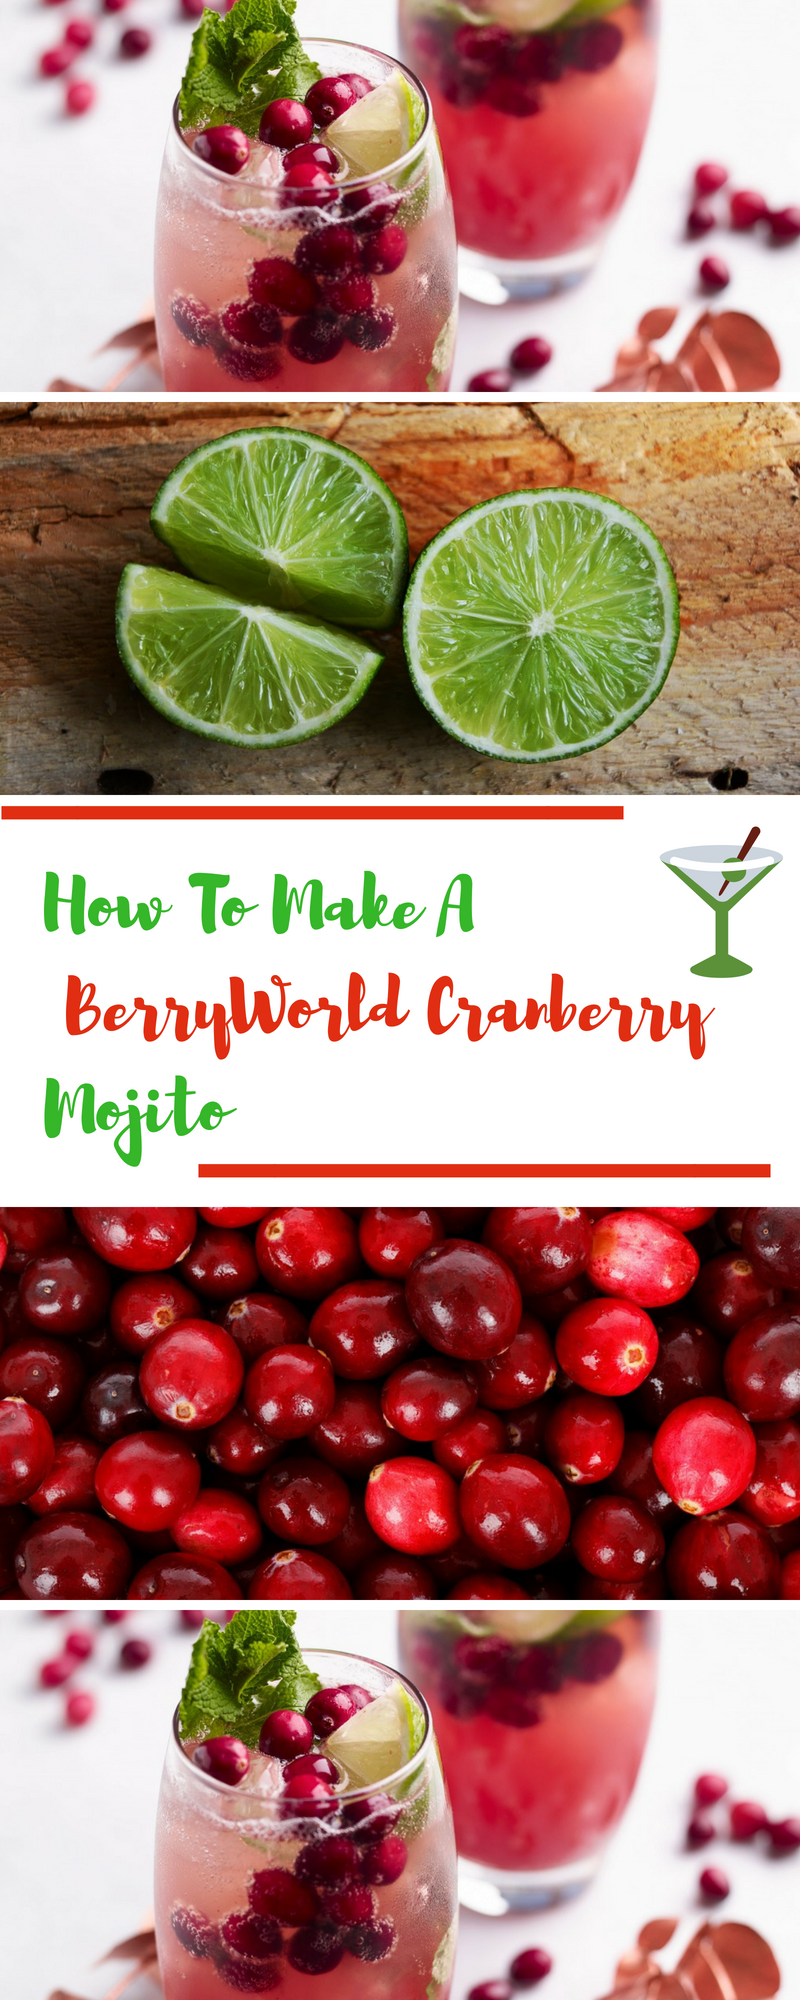 How To Make A BerryWorld Cranberry Mojito